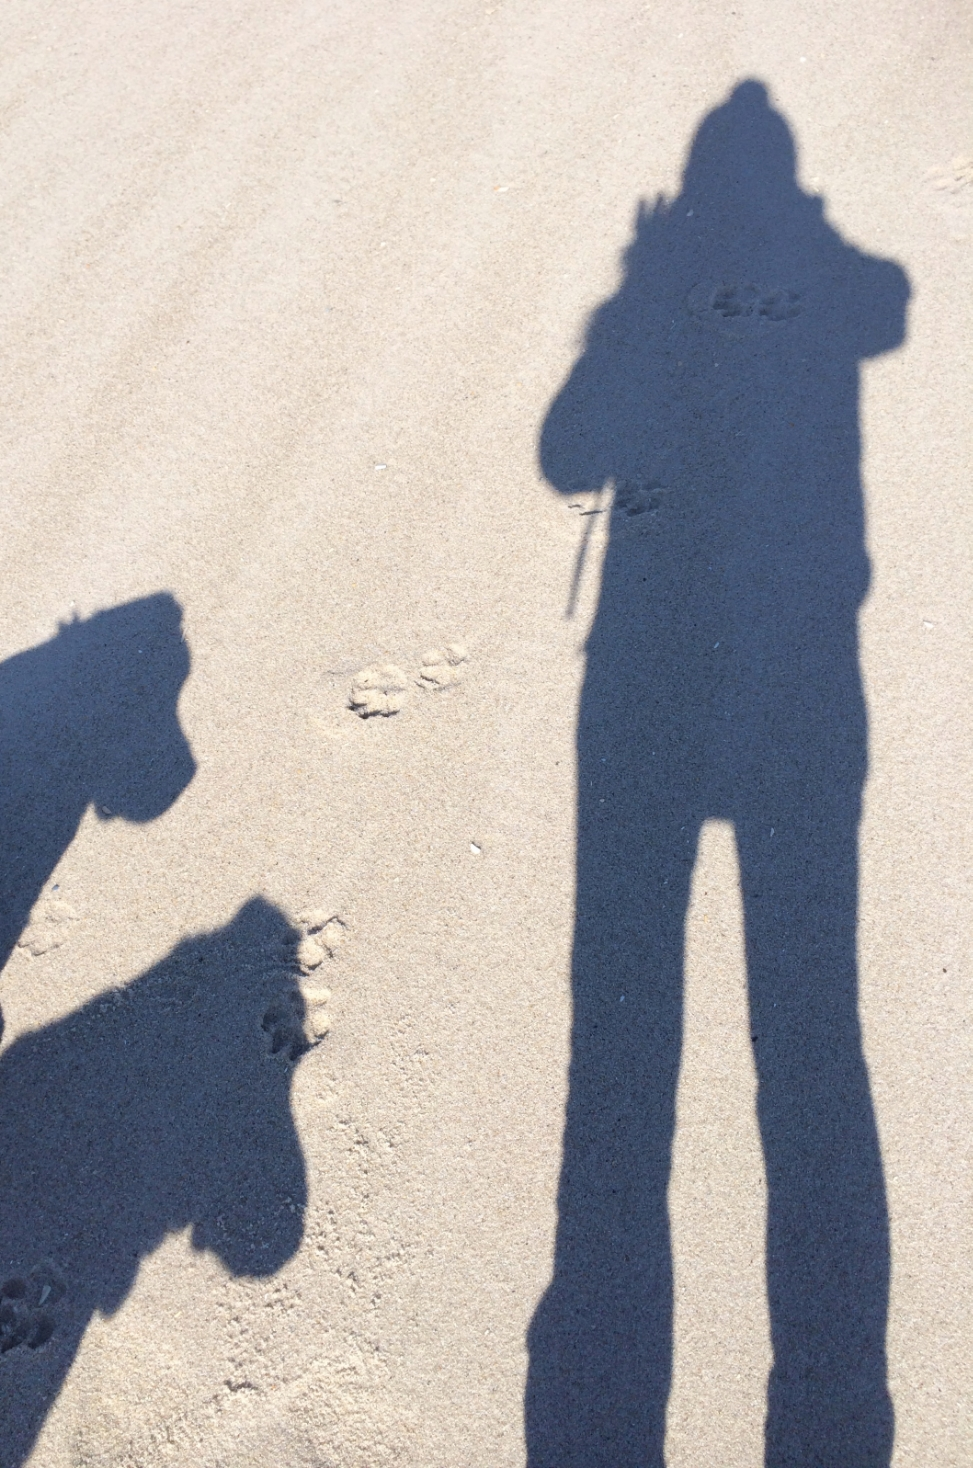 Wish l could outline the shadow in the sand...